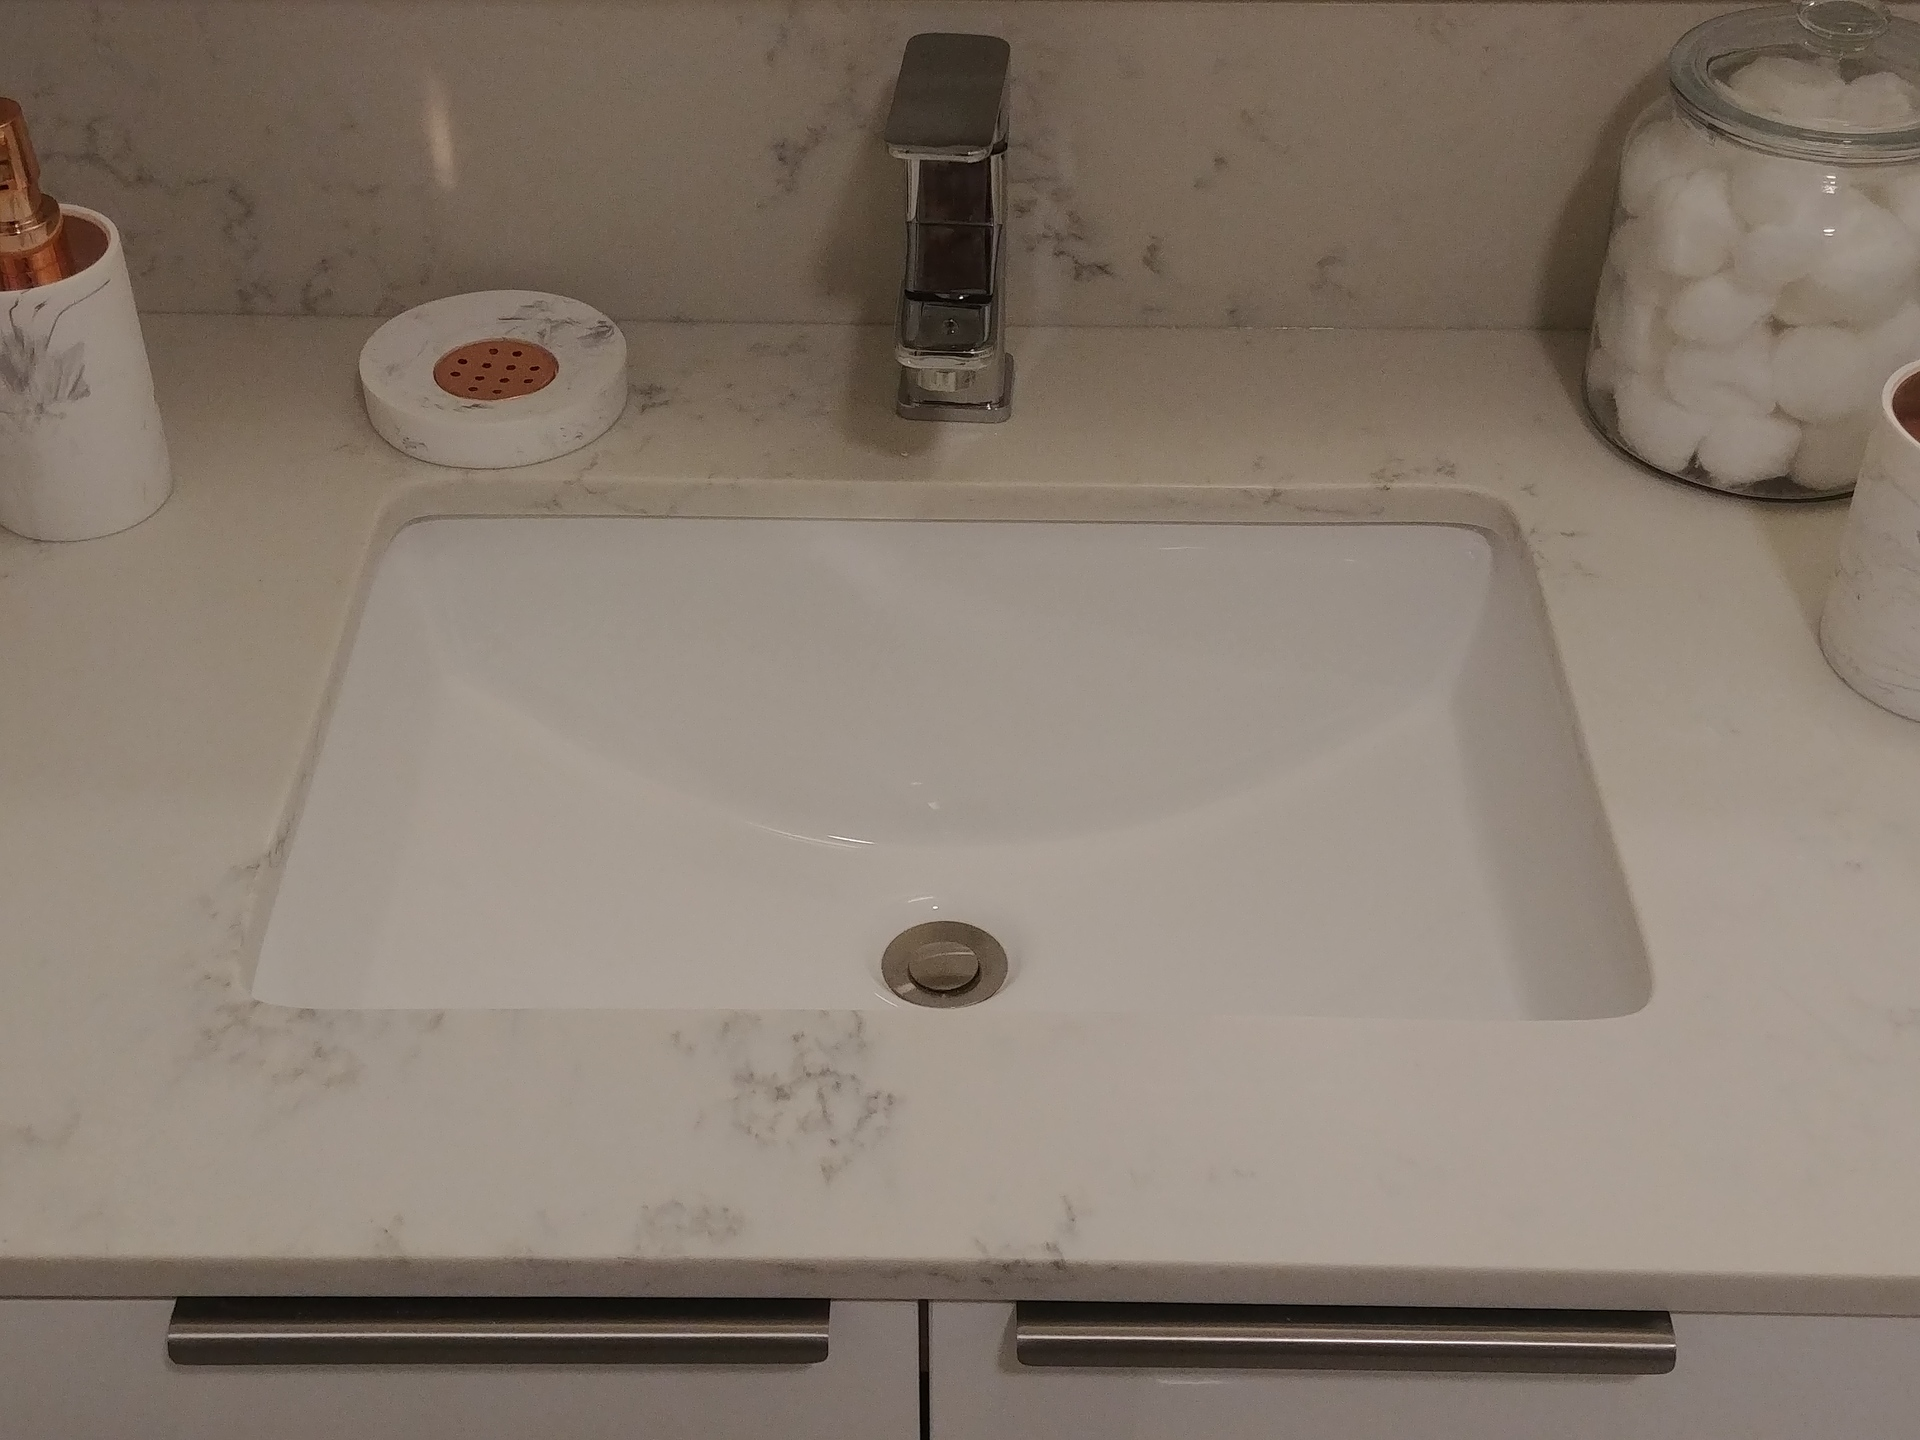 aristotle-undermount-bathrm-sink at Aristotle (20203 84 Avenue, Willoughby Heights, Langley)